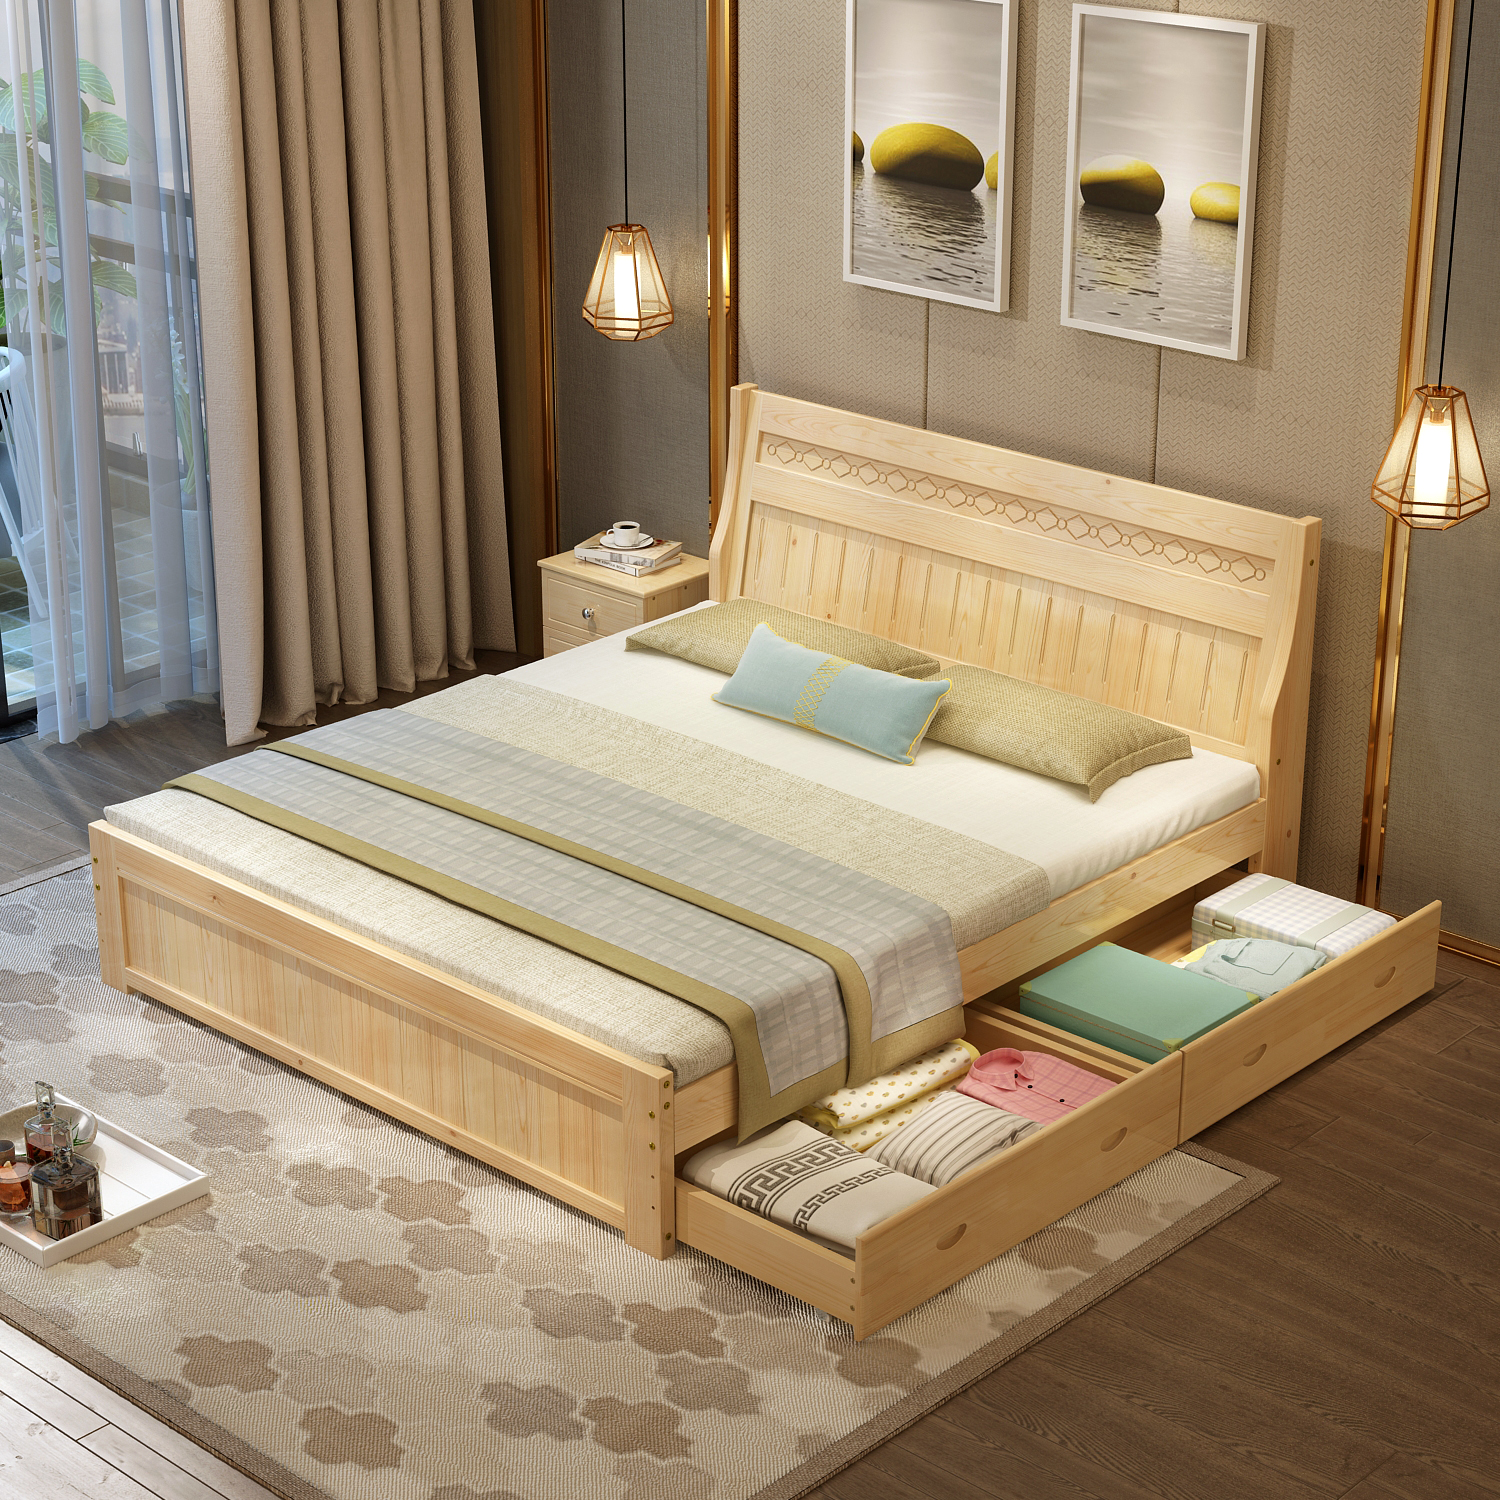 Solid Wood Bed Double Bed Pine Master Bedroom Storage Bed Modern Contracted 1 8m 1 5m Big Bed Sheet Person 1 2 Furniture